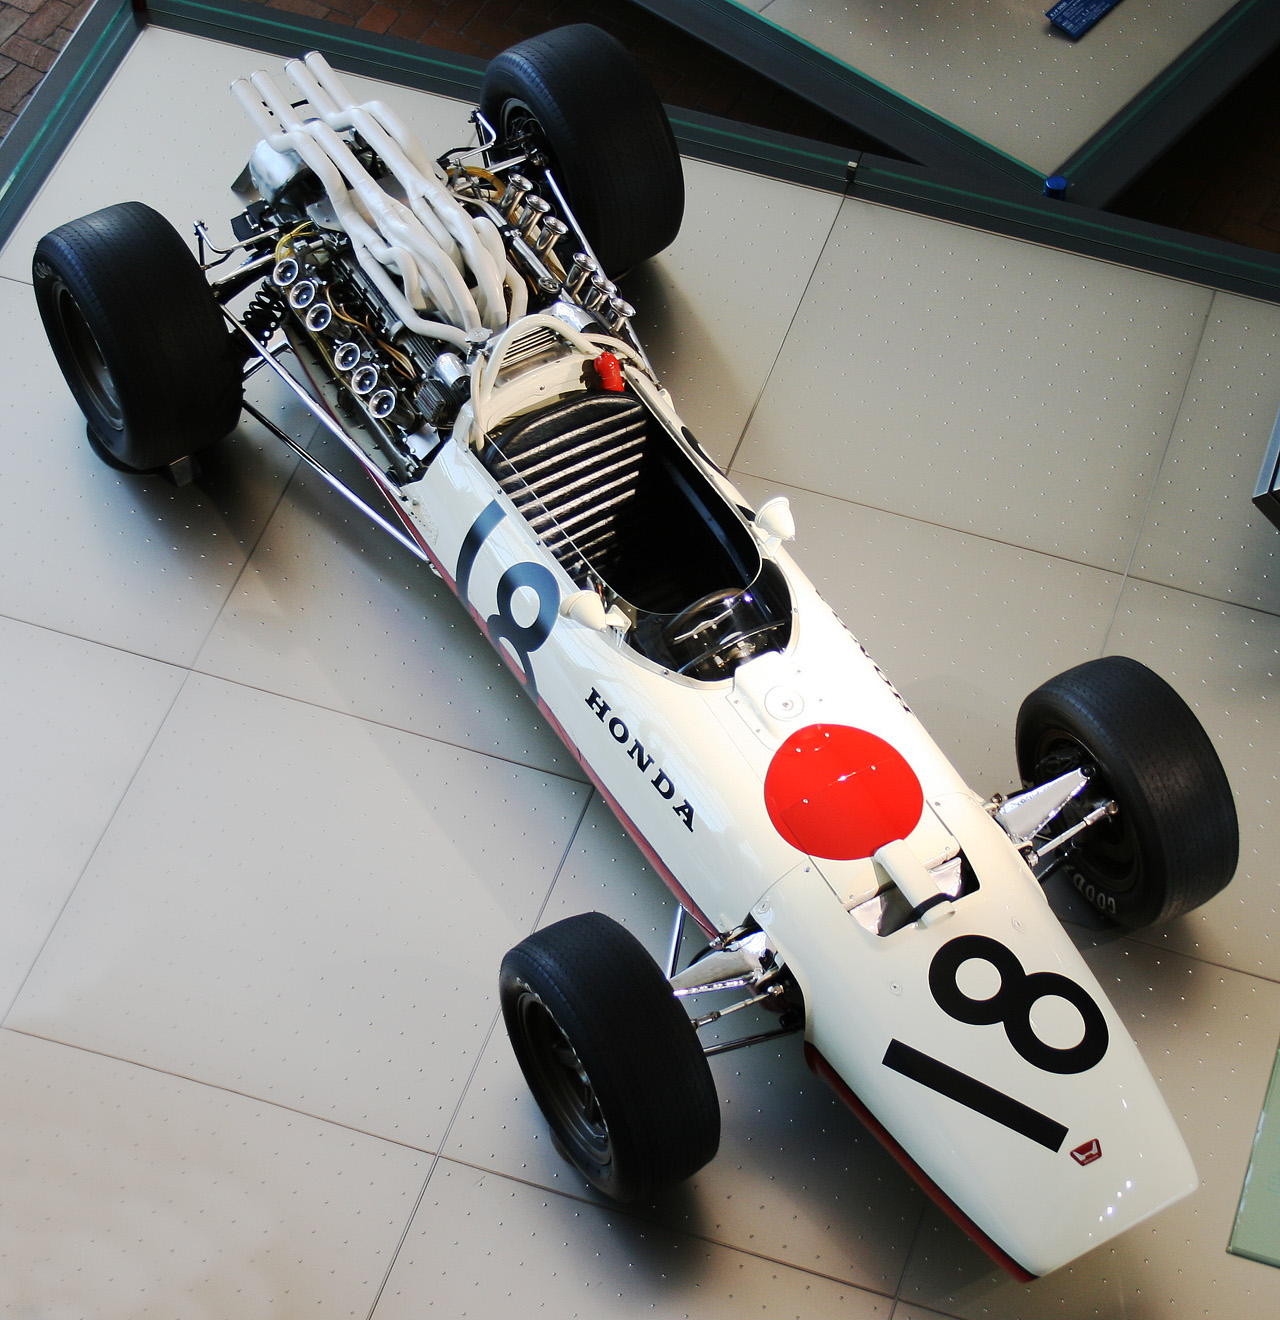 1966 HONDA F-1 GP Honda's F1 car over the period 1966-7, the RA273, didn't prove to be a very  successful one - 9 races, 0 wins, 0 poles, 1 fastest lap - but it  definitely ...